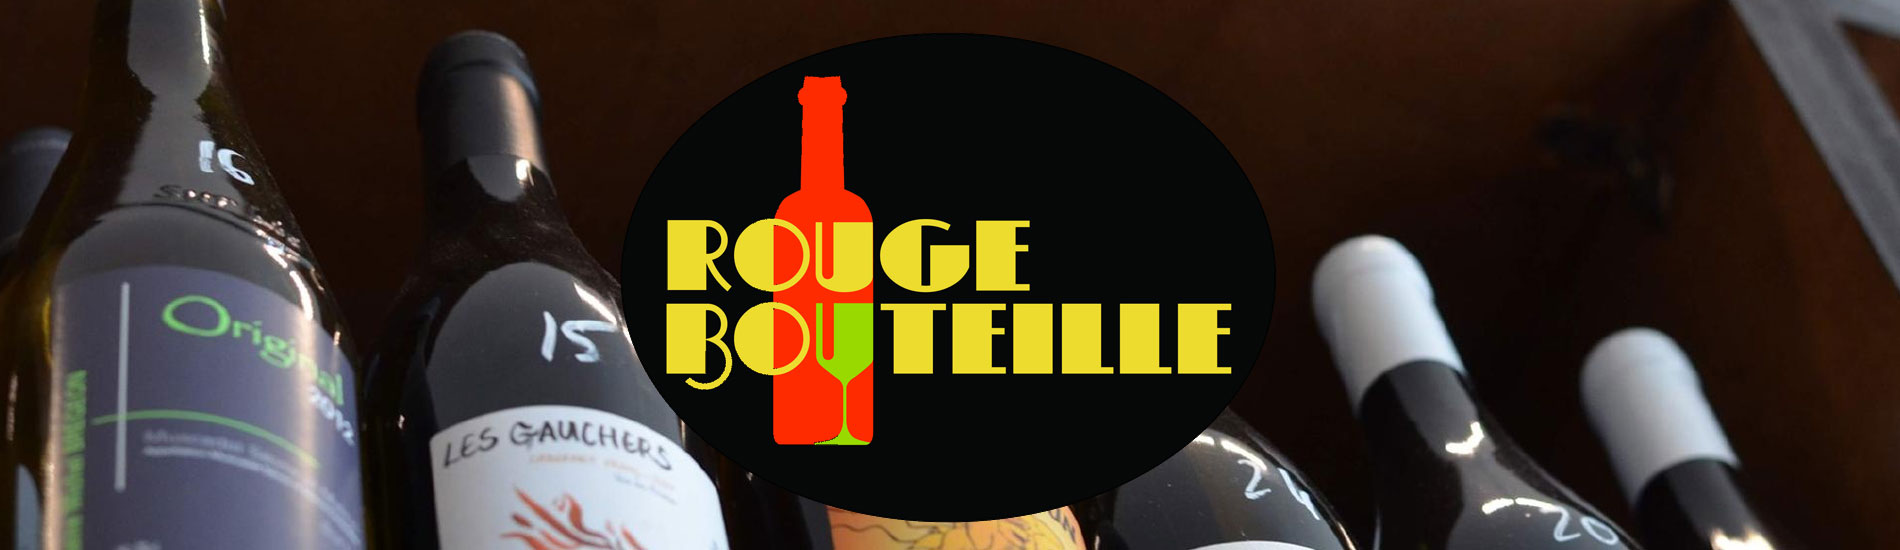 ROUGE BOUTEILLE